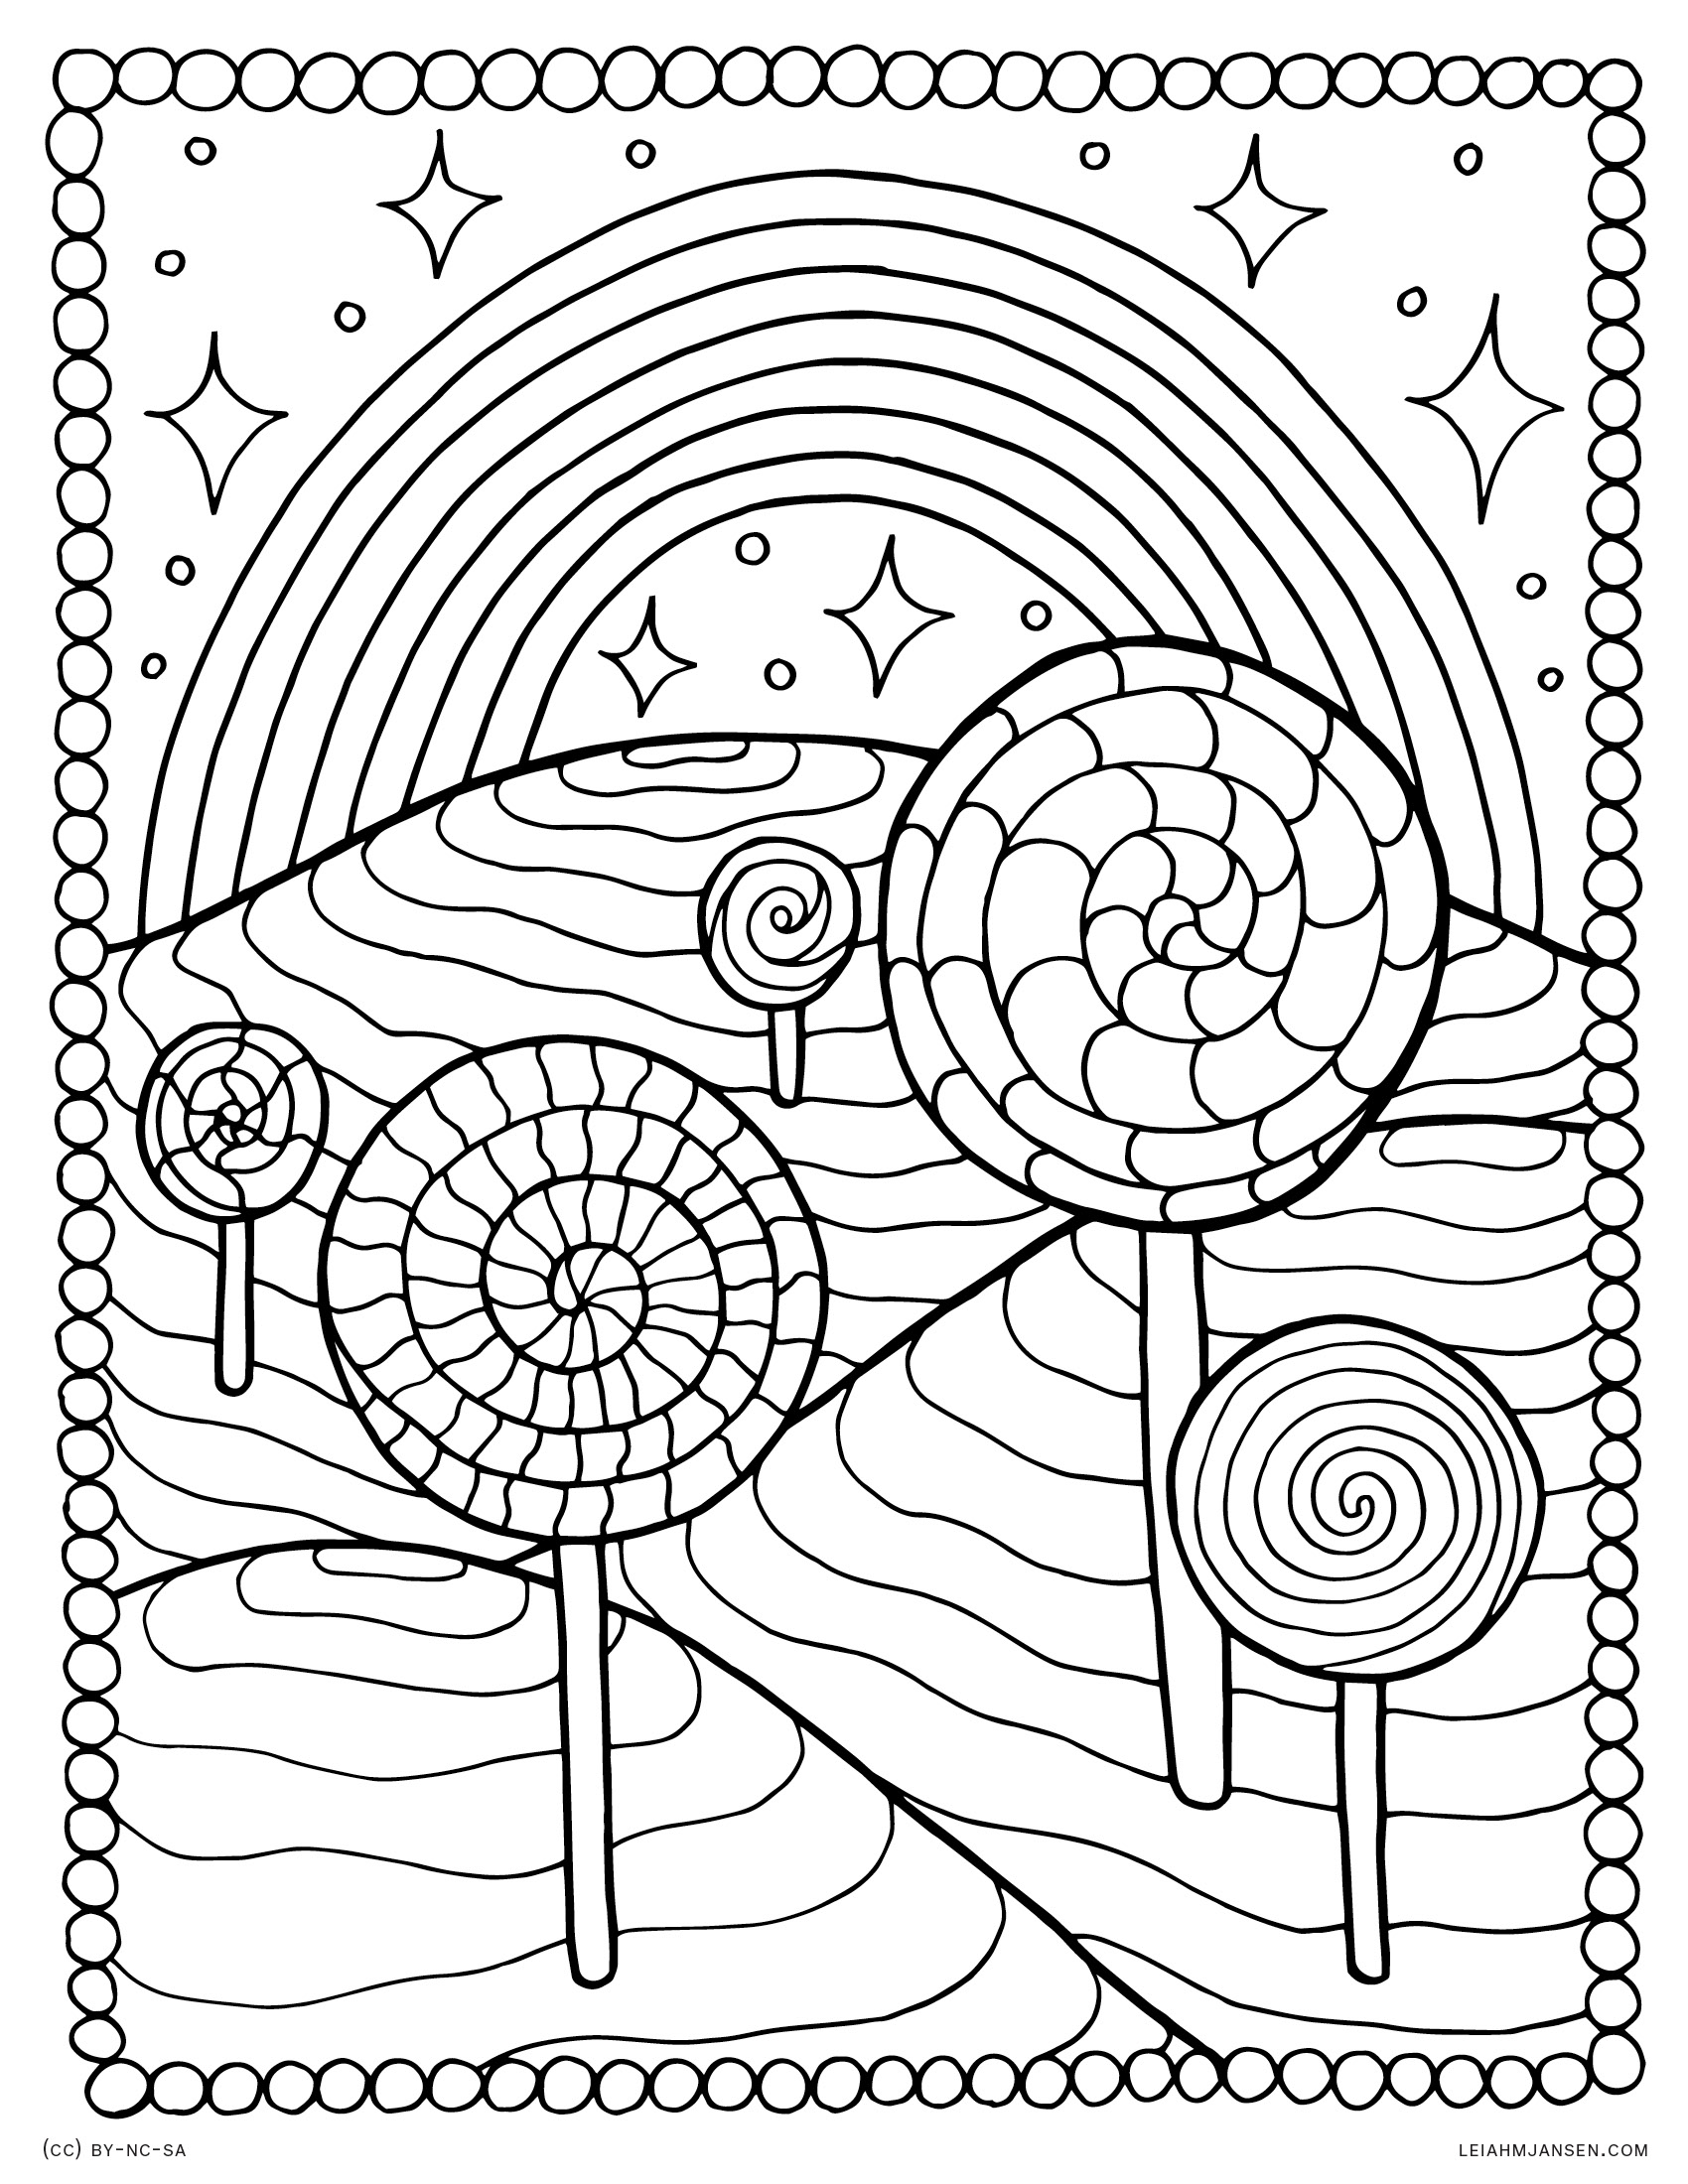 It is a picture of Bright adult rainbow coloring pages